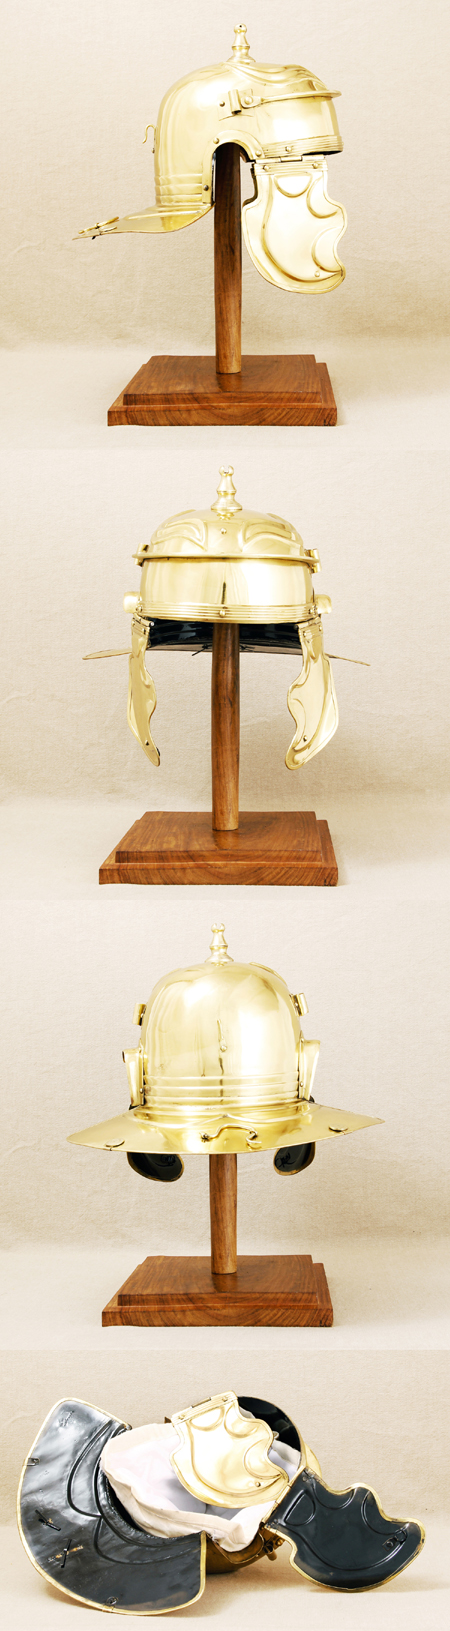 Roman legion helmet (100 AD) for reenactors